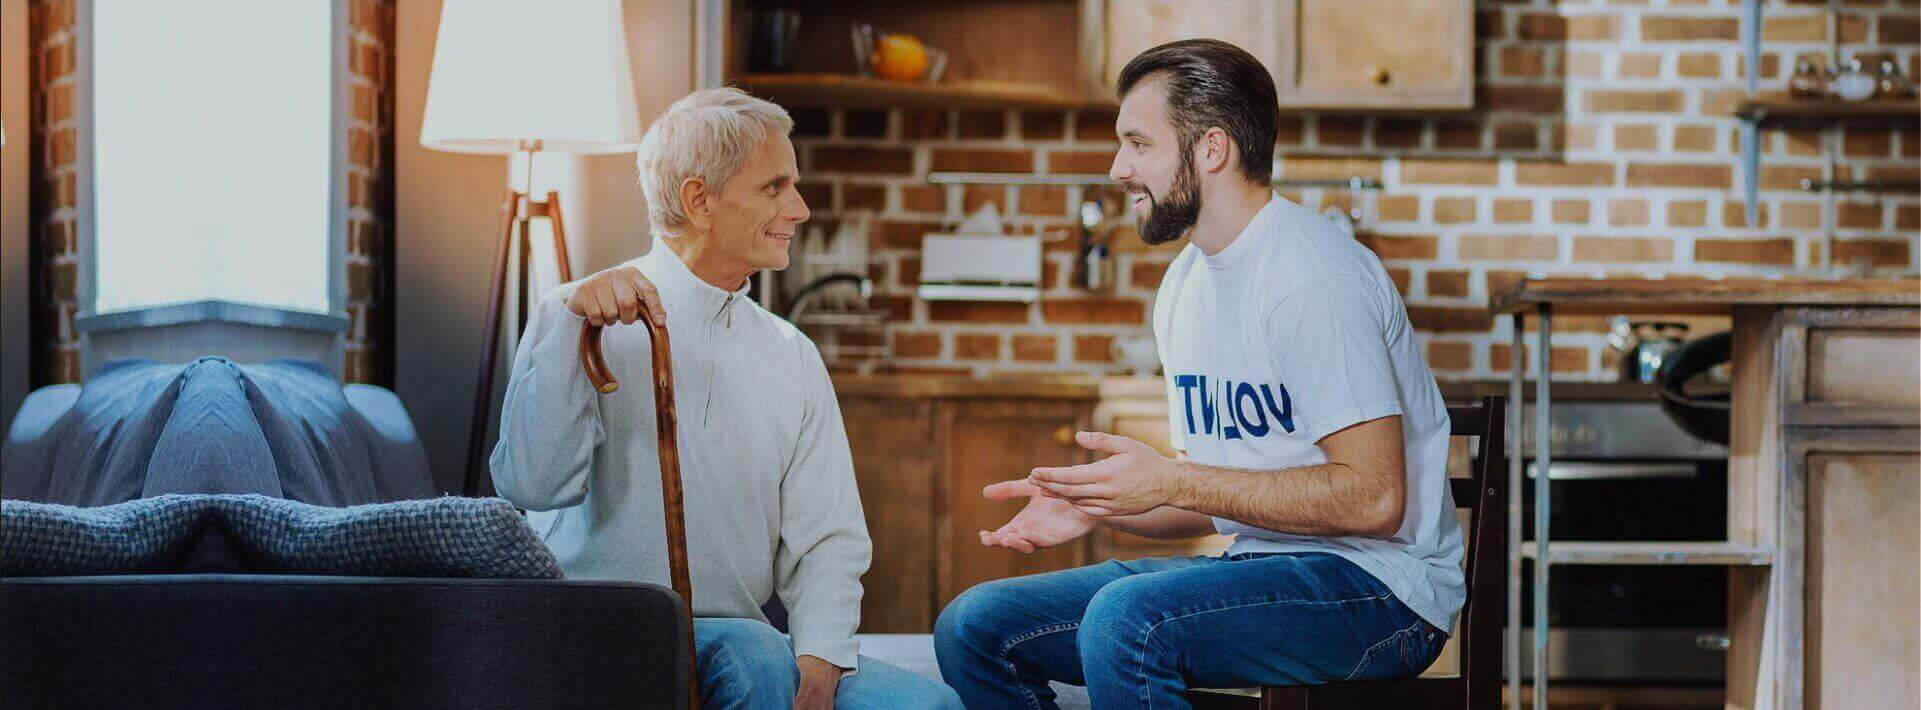 senior man and a man talking